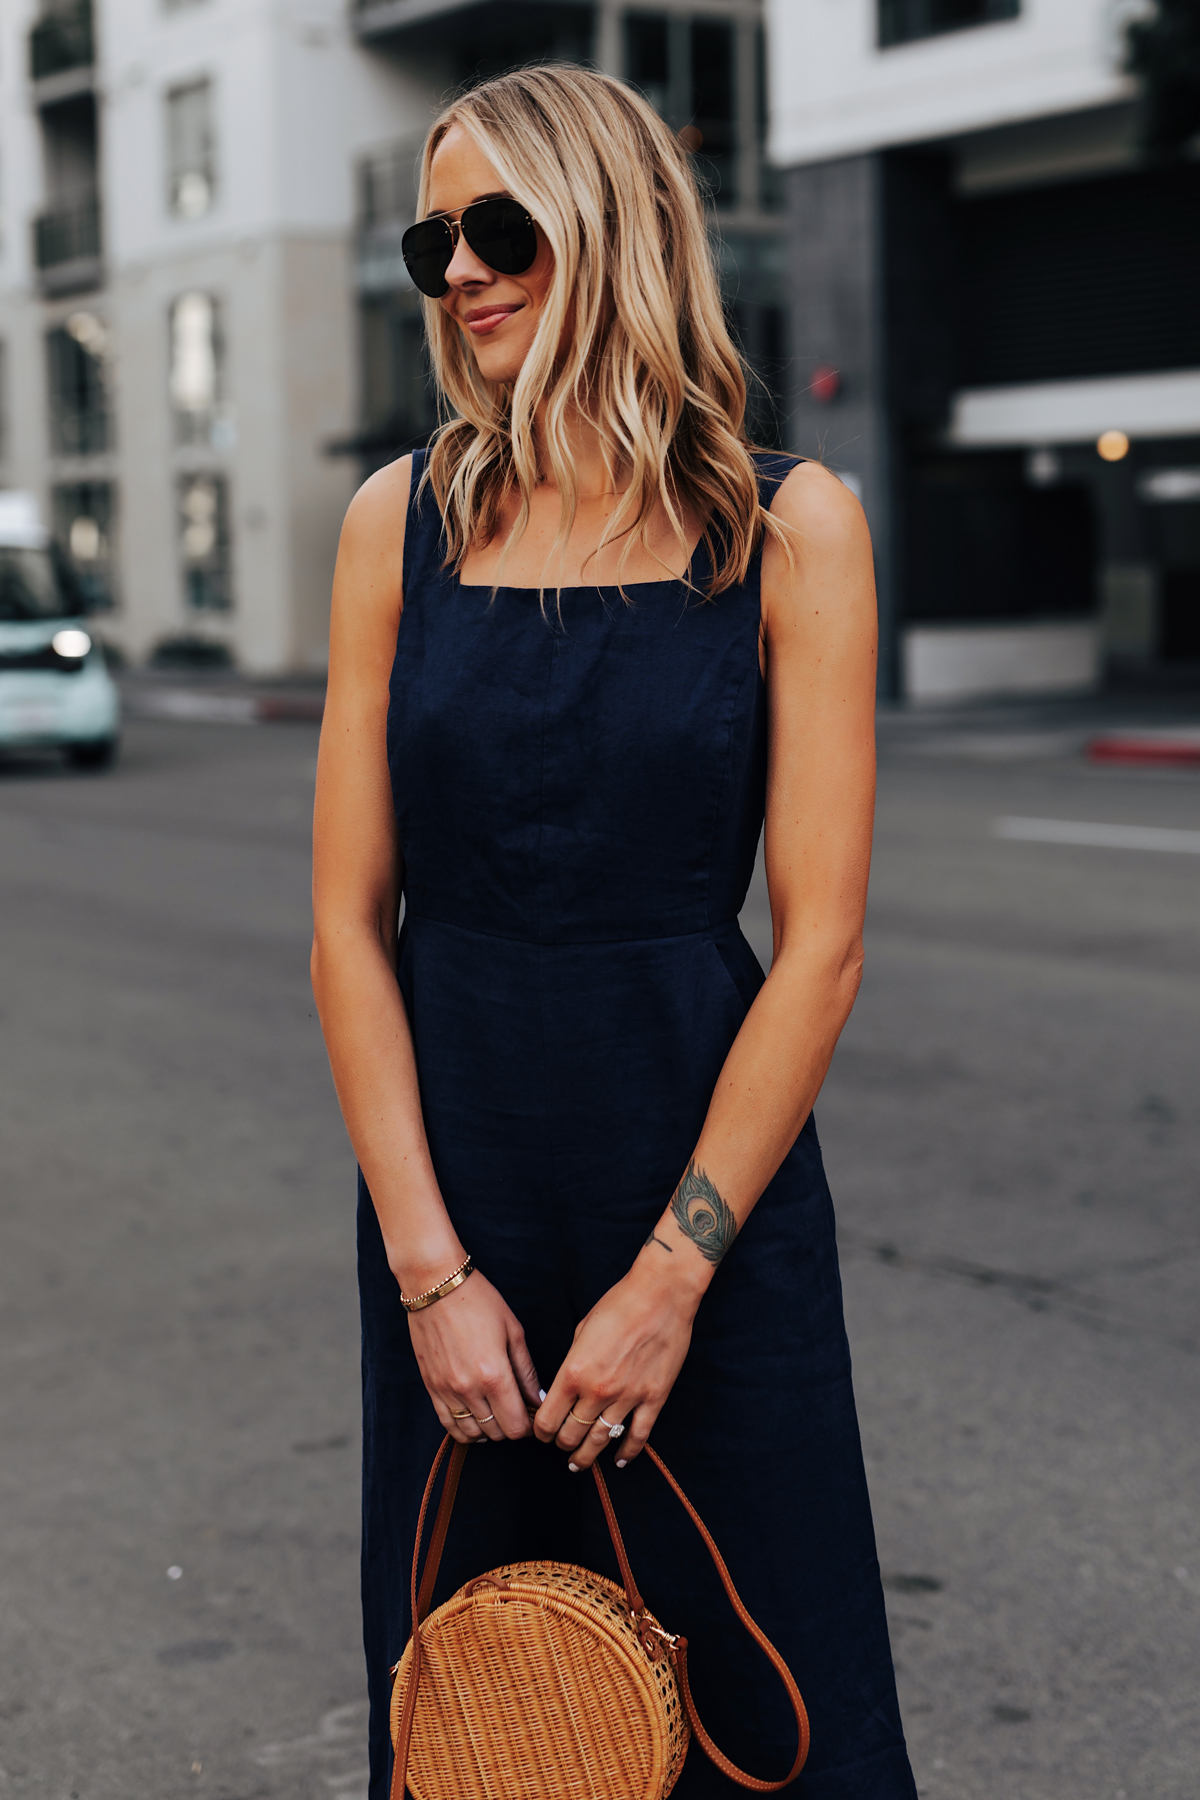 Blonde Woman Wearing Navy Jumpsuit Circle Basket Bag Fashion Jackson San Diego Fashion Blogger Street Style